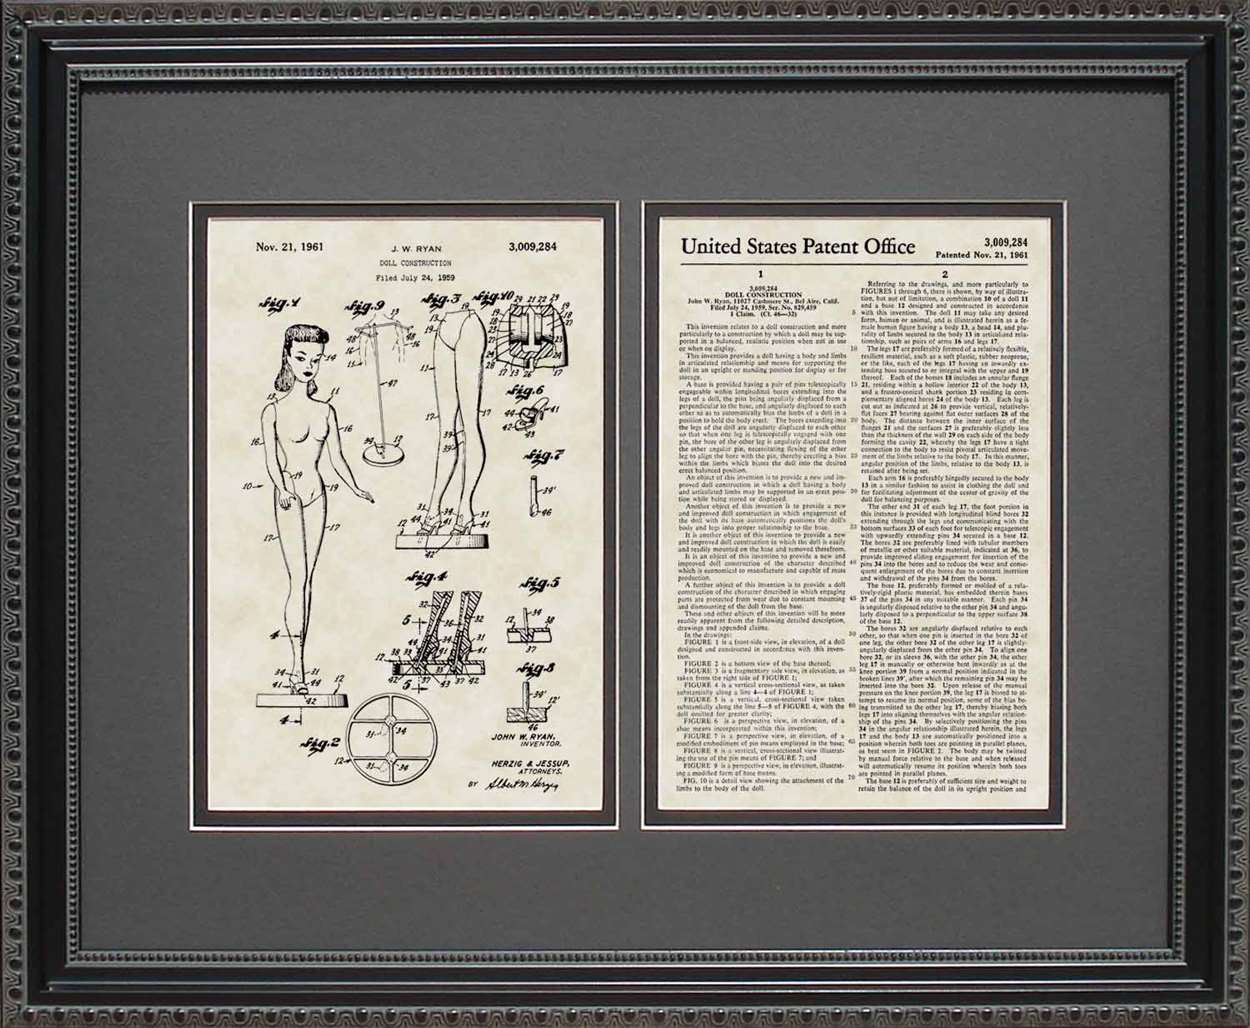 Barbie Doll Patent, Art & Copy, Ryan, 1961, 16x20